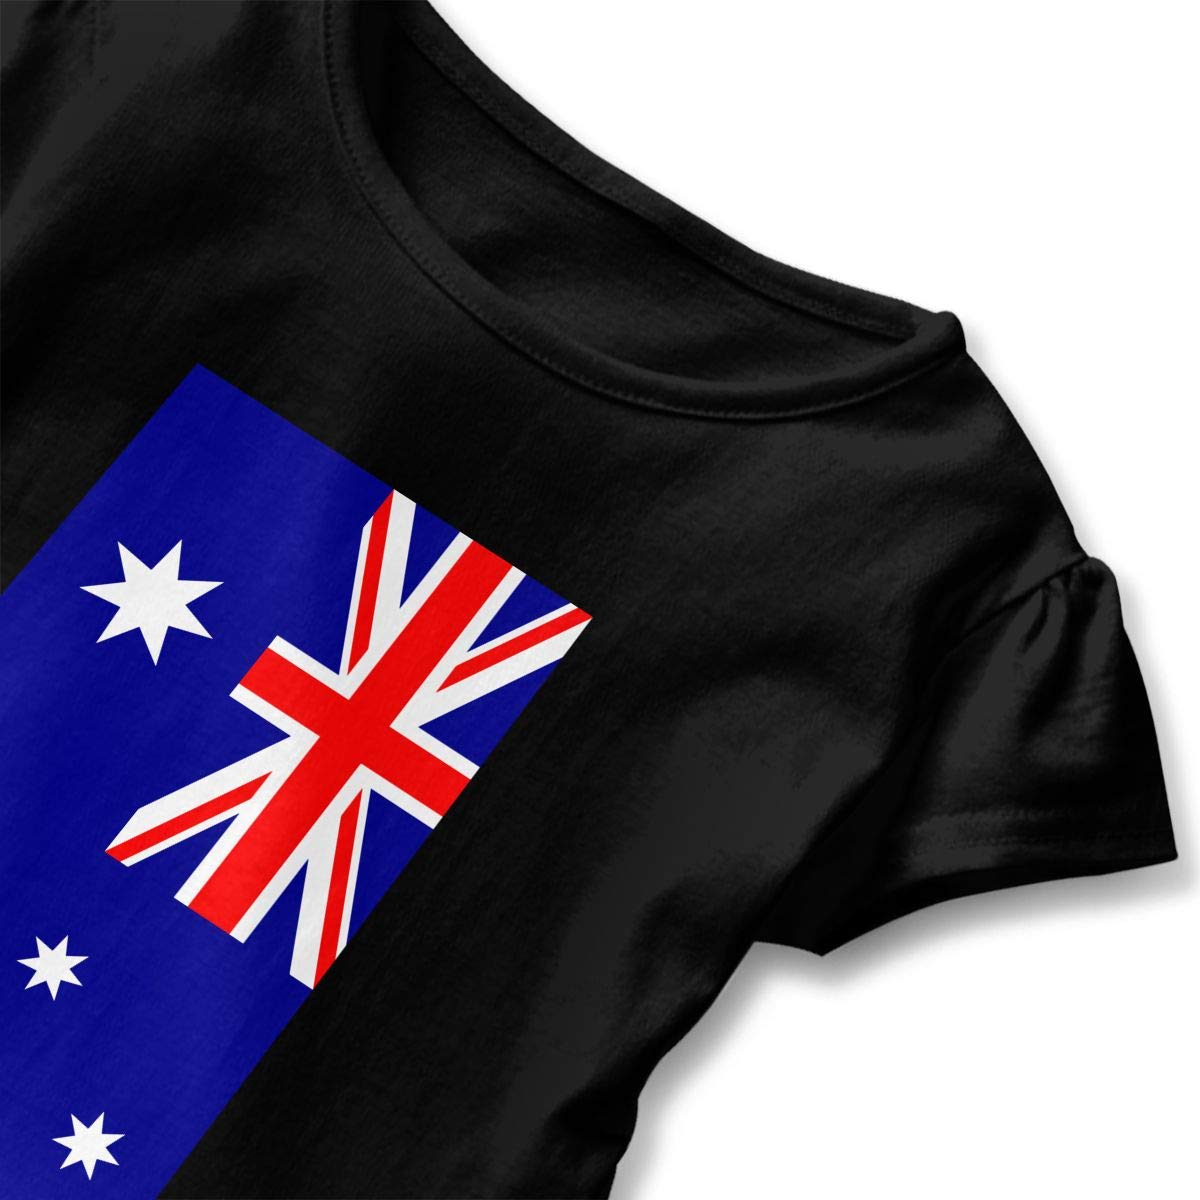 SHIRT1-KIDS Flag of Australia Toddler//Infant Girls Short Sleeve T-Shirts Ruffles Shirt Tee Jersey for 2-6T